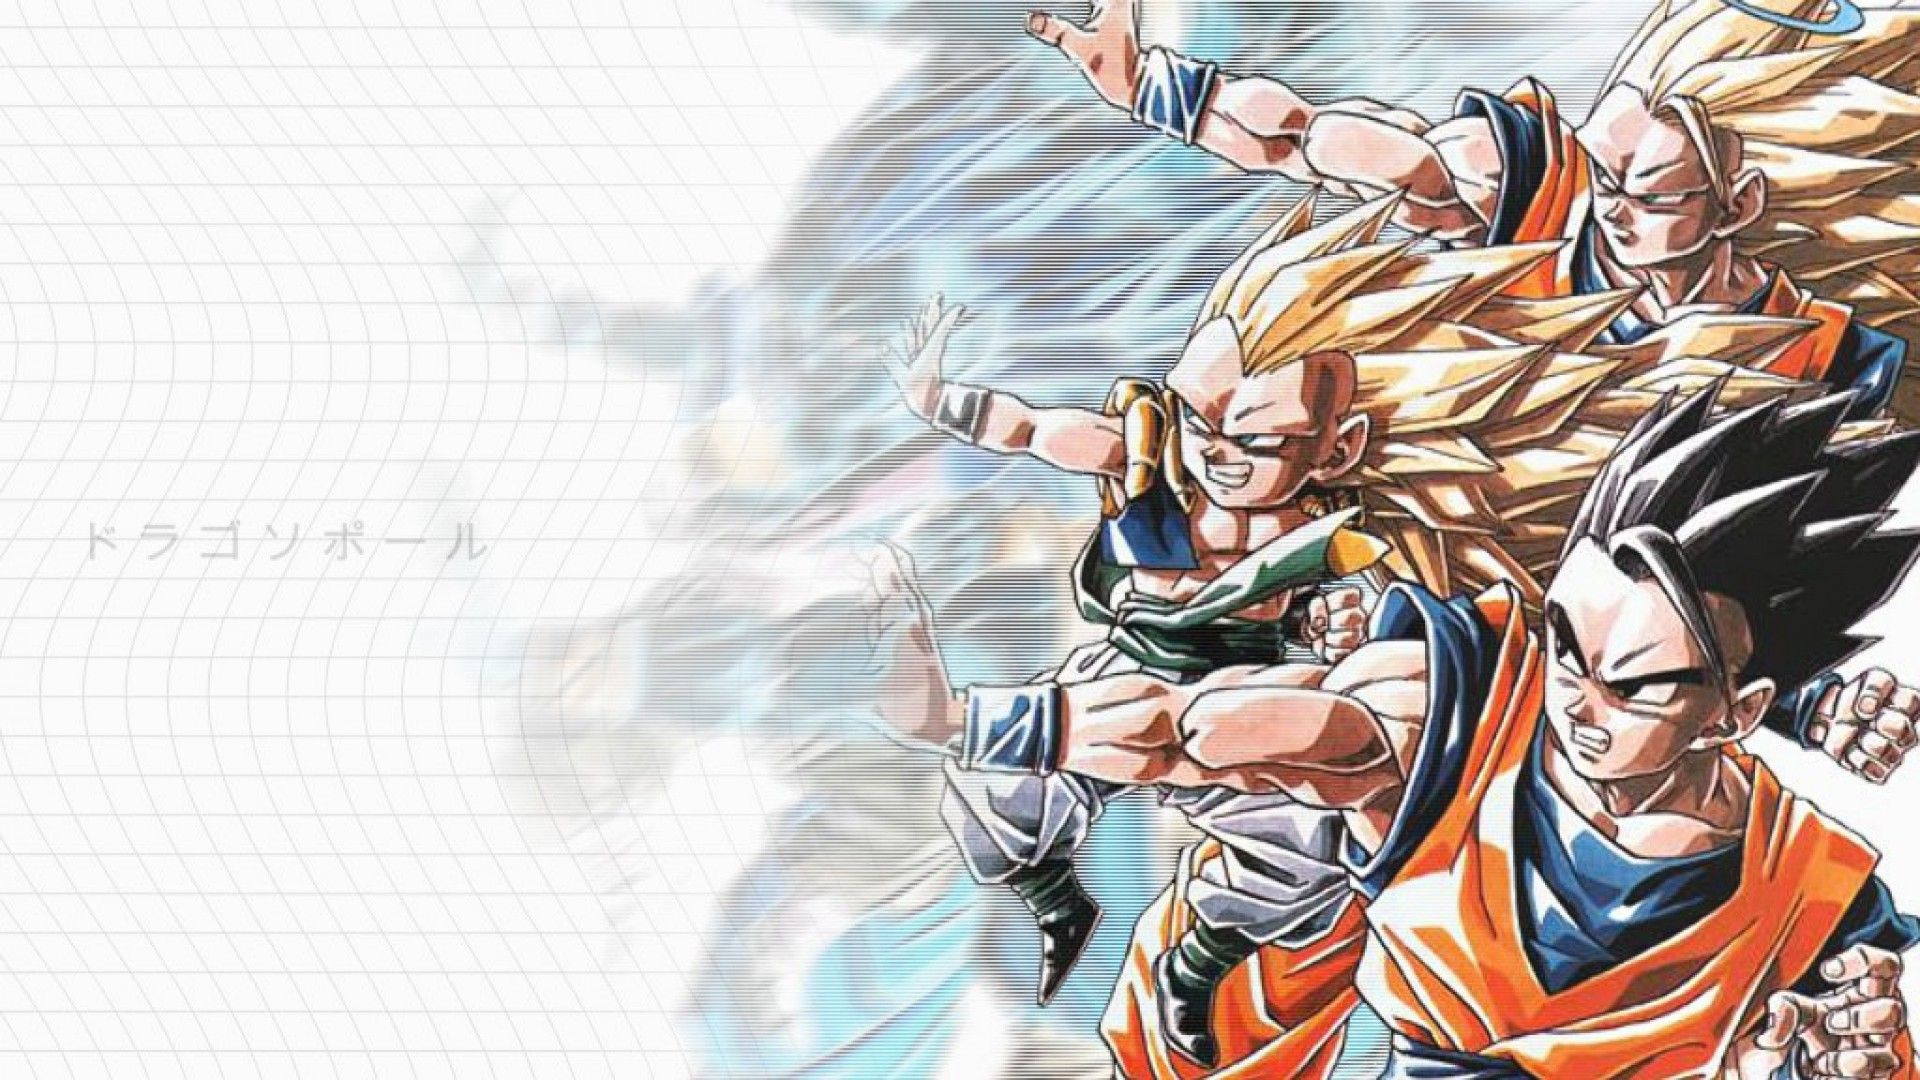 Dragon Ball Z 1080p Wallpaper - WallpaperSafari